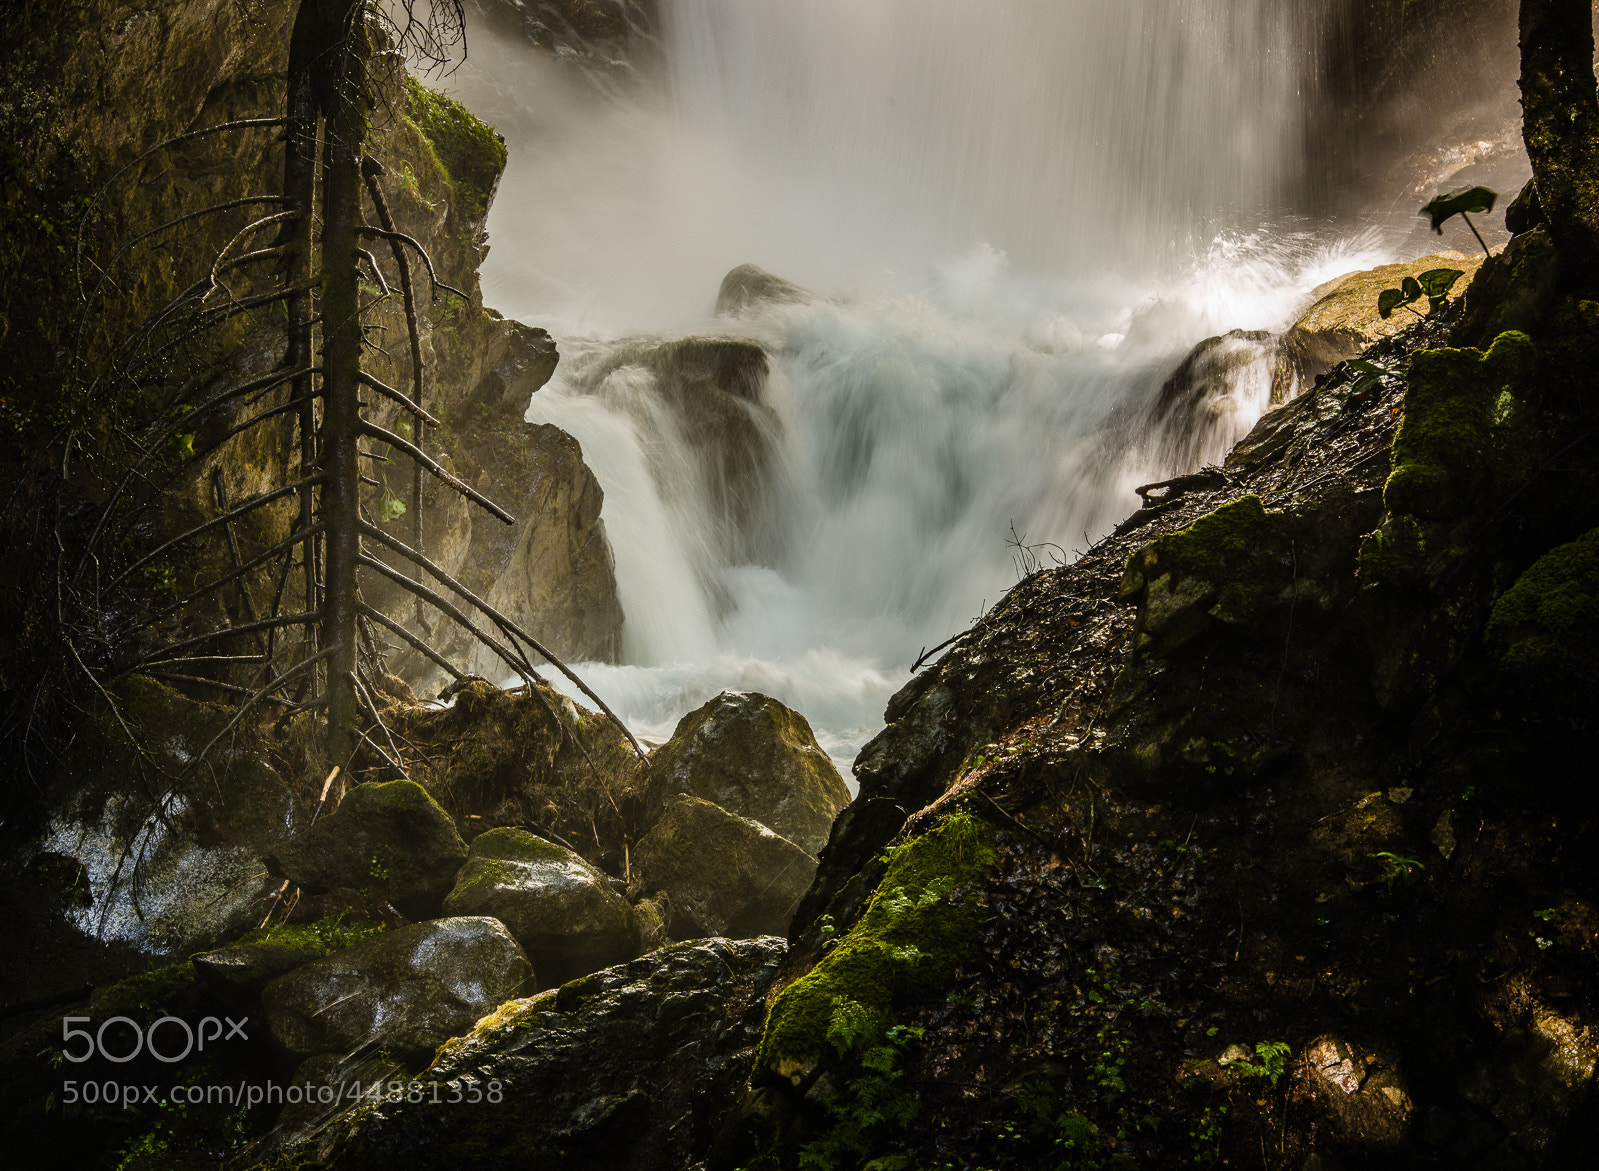 Photograph Waterfall in the Pyrenees by Hans Kruse on 500px